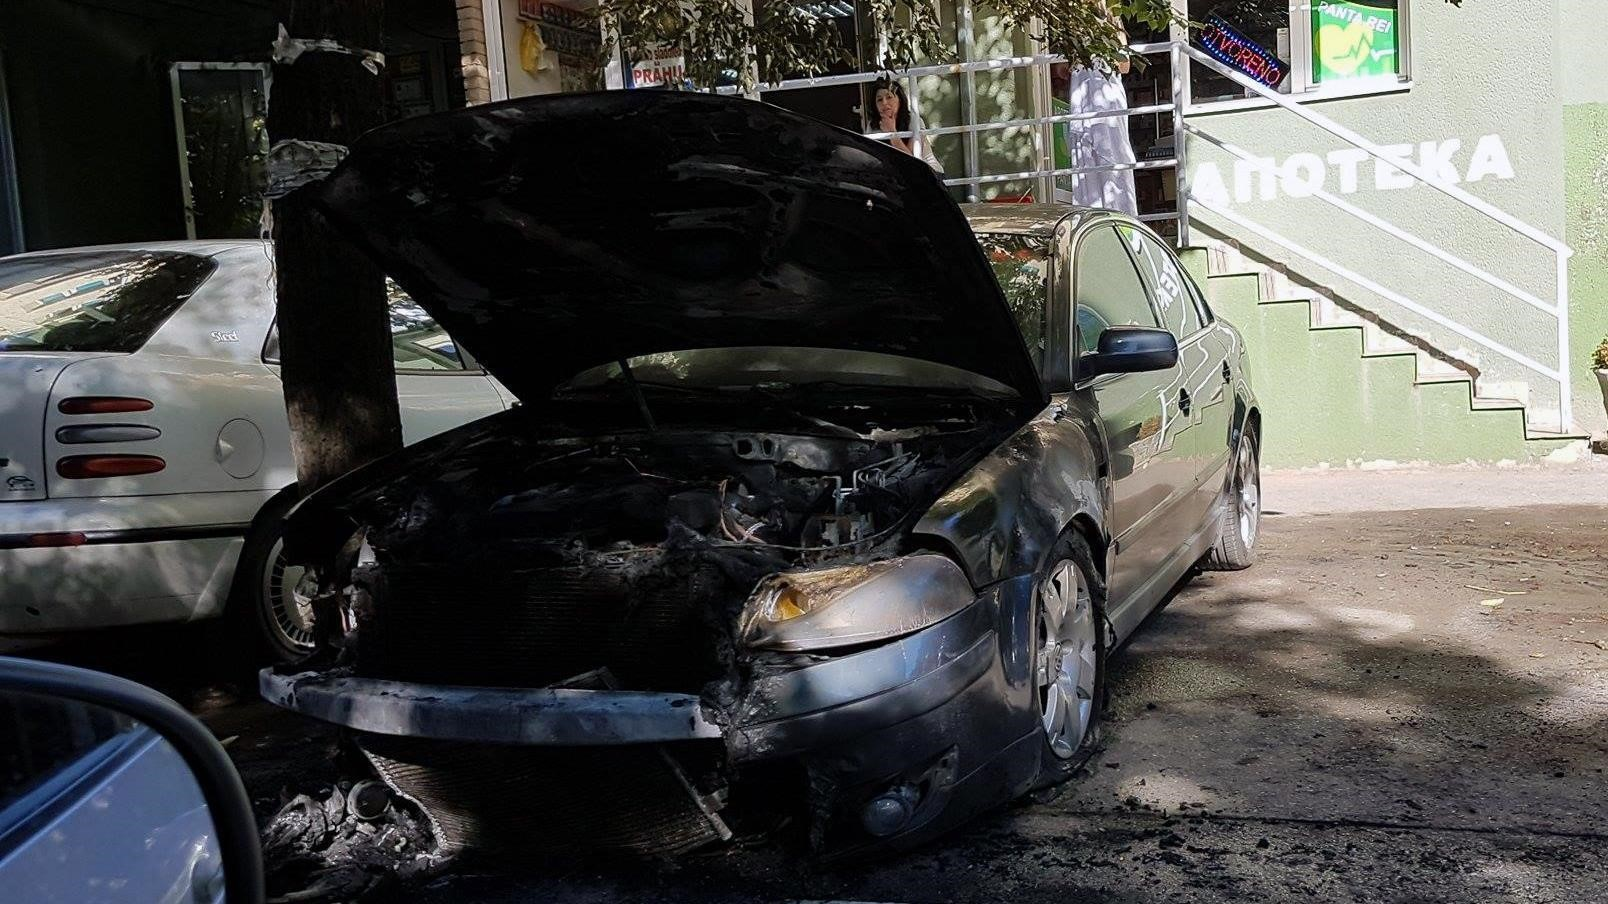 Oliver Ivanovic's car is seen gutted by fire after it was blown up by unknown attackers in July 2017. Photo: KoSSev